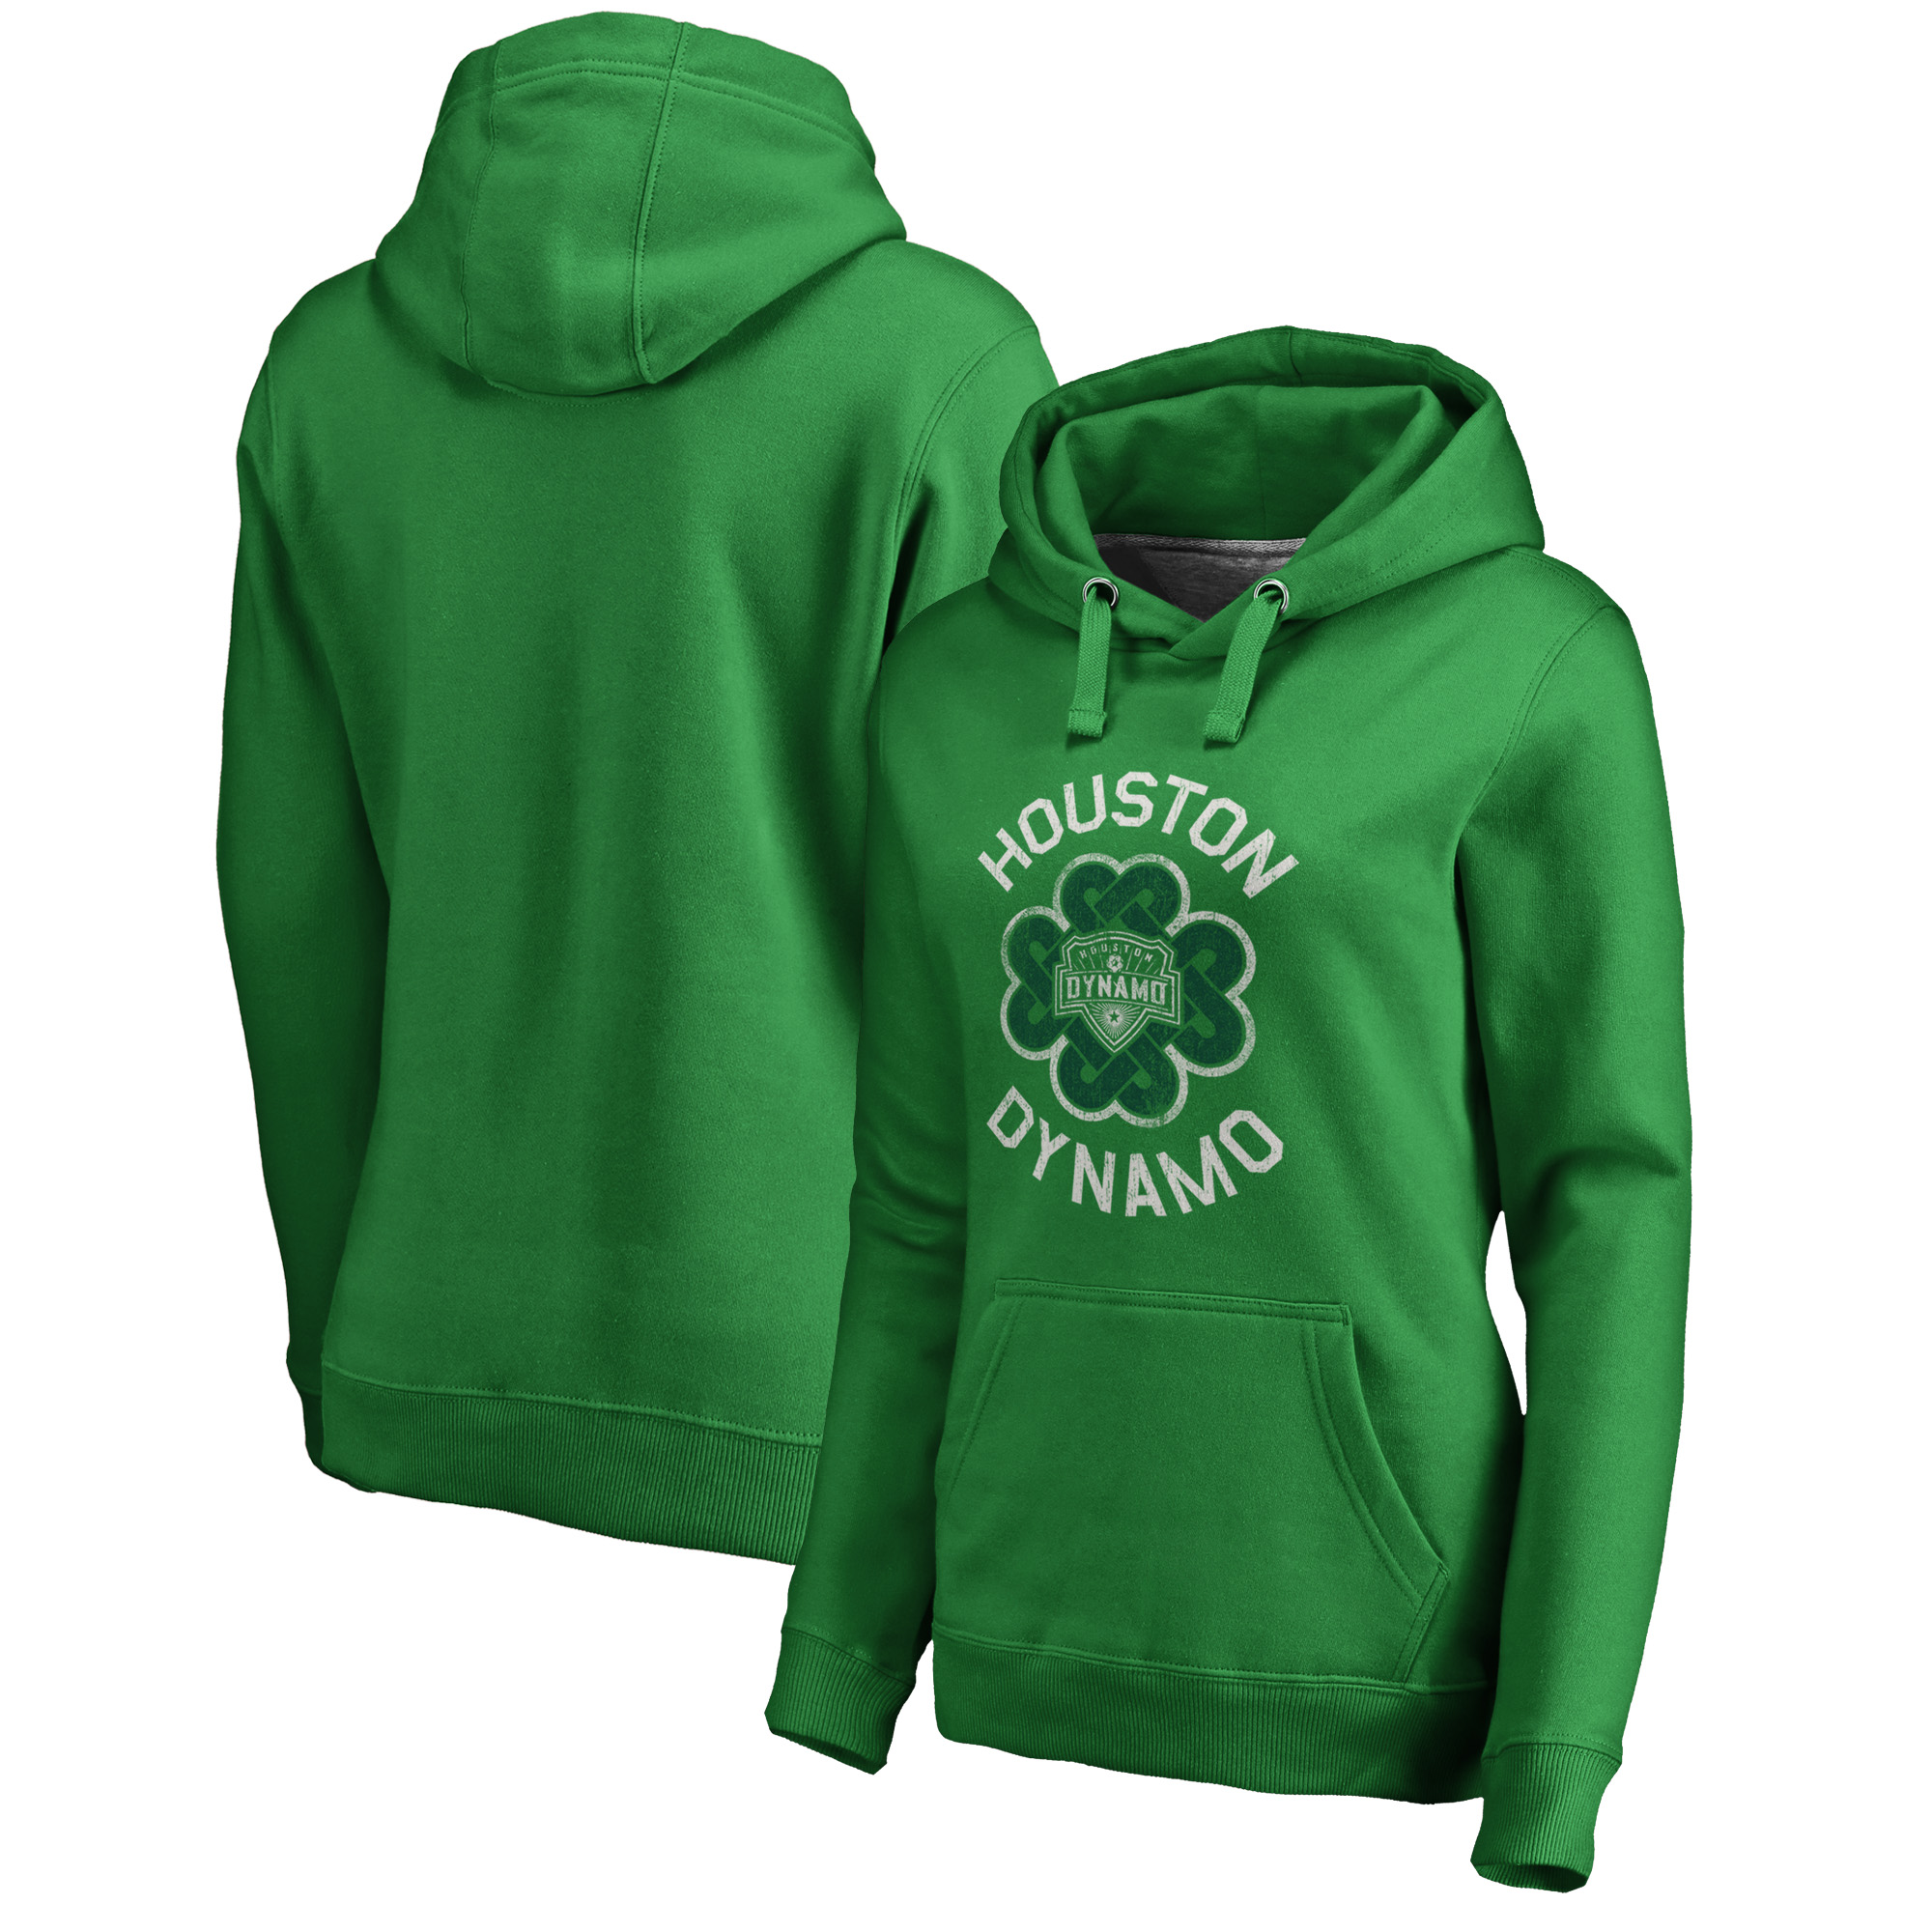 Houston Dynamo Fanatics Branded Women's St. Patrick's Day Luck Tradition Pullover Hoodie - Kelly Green